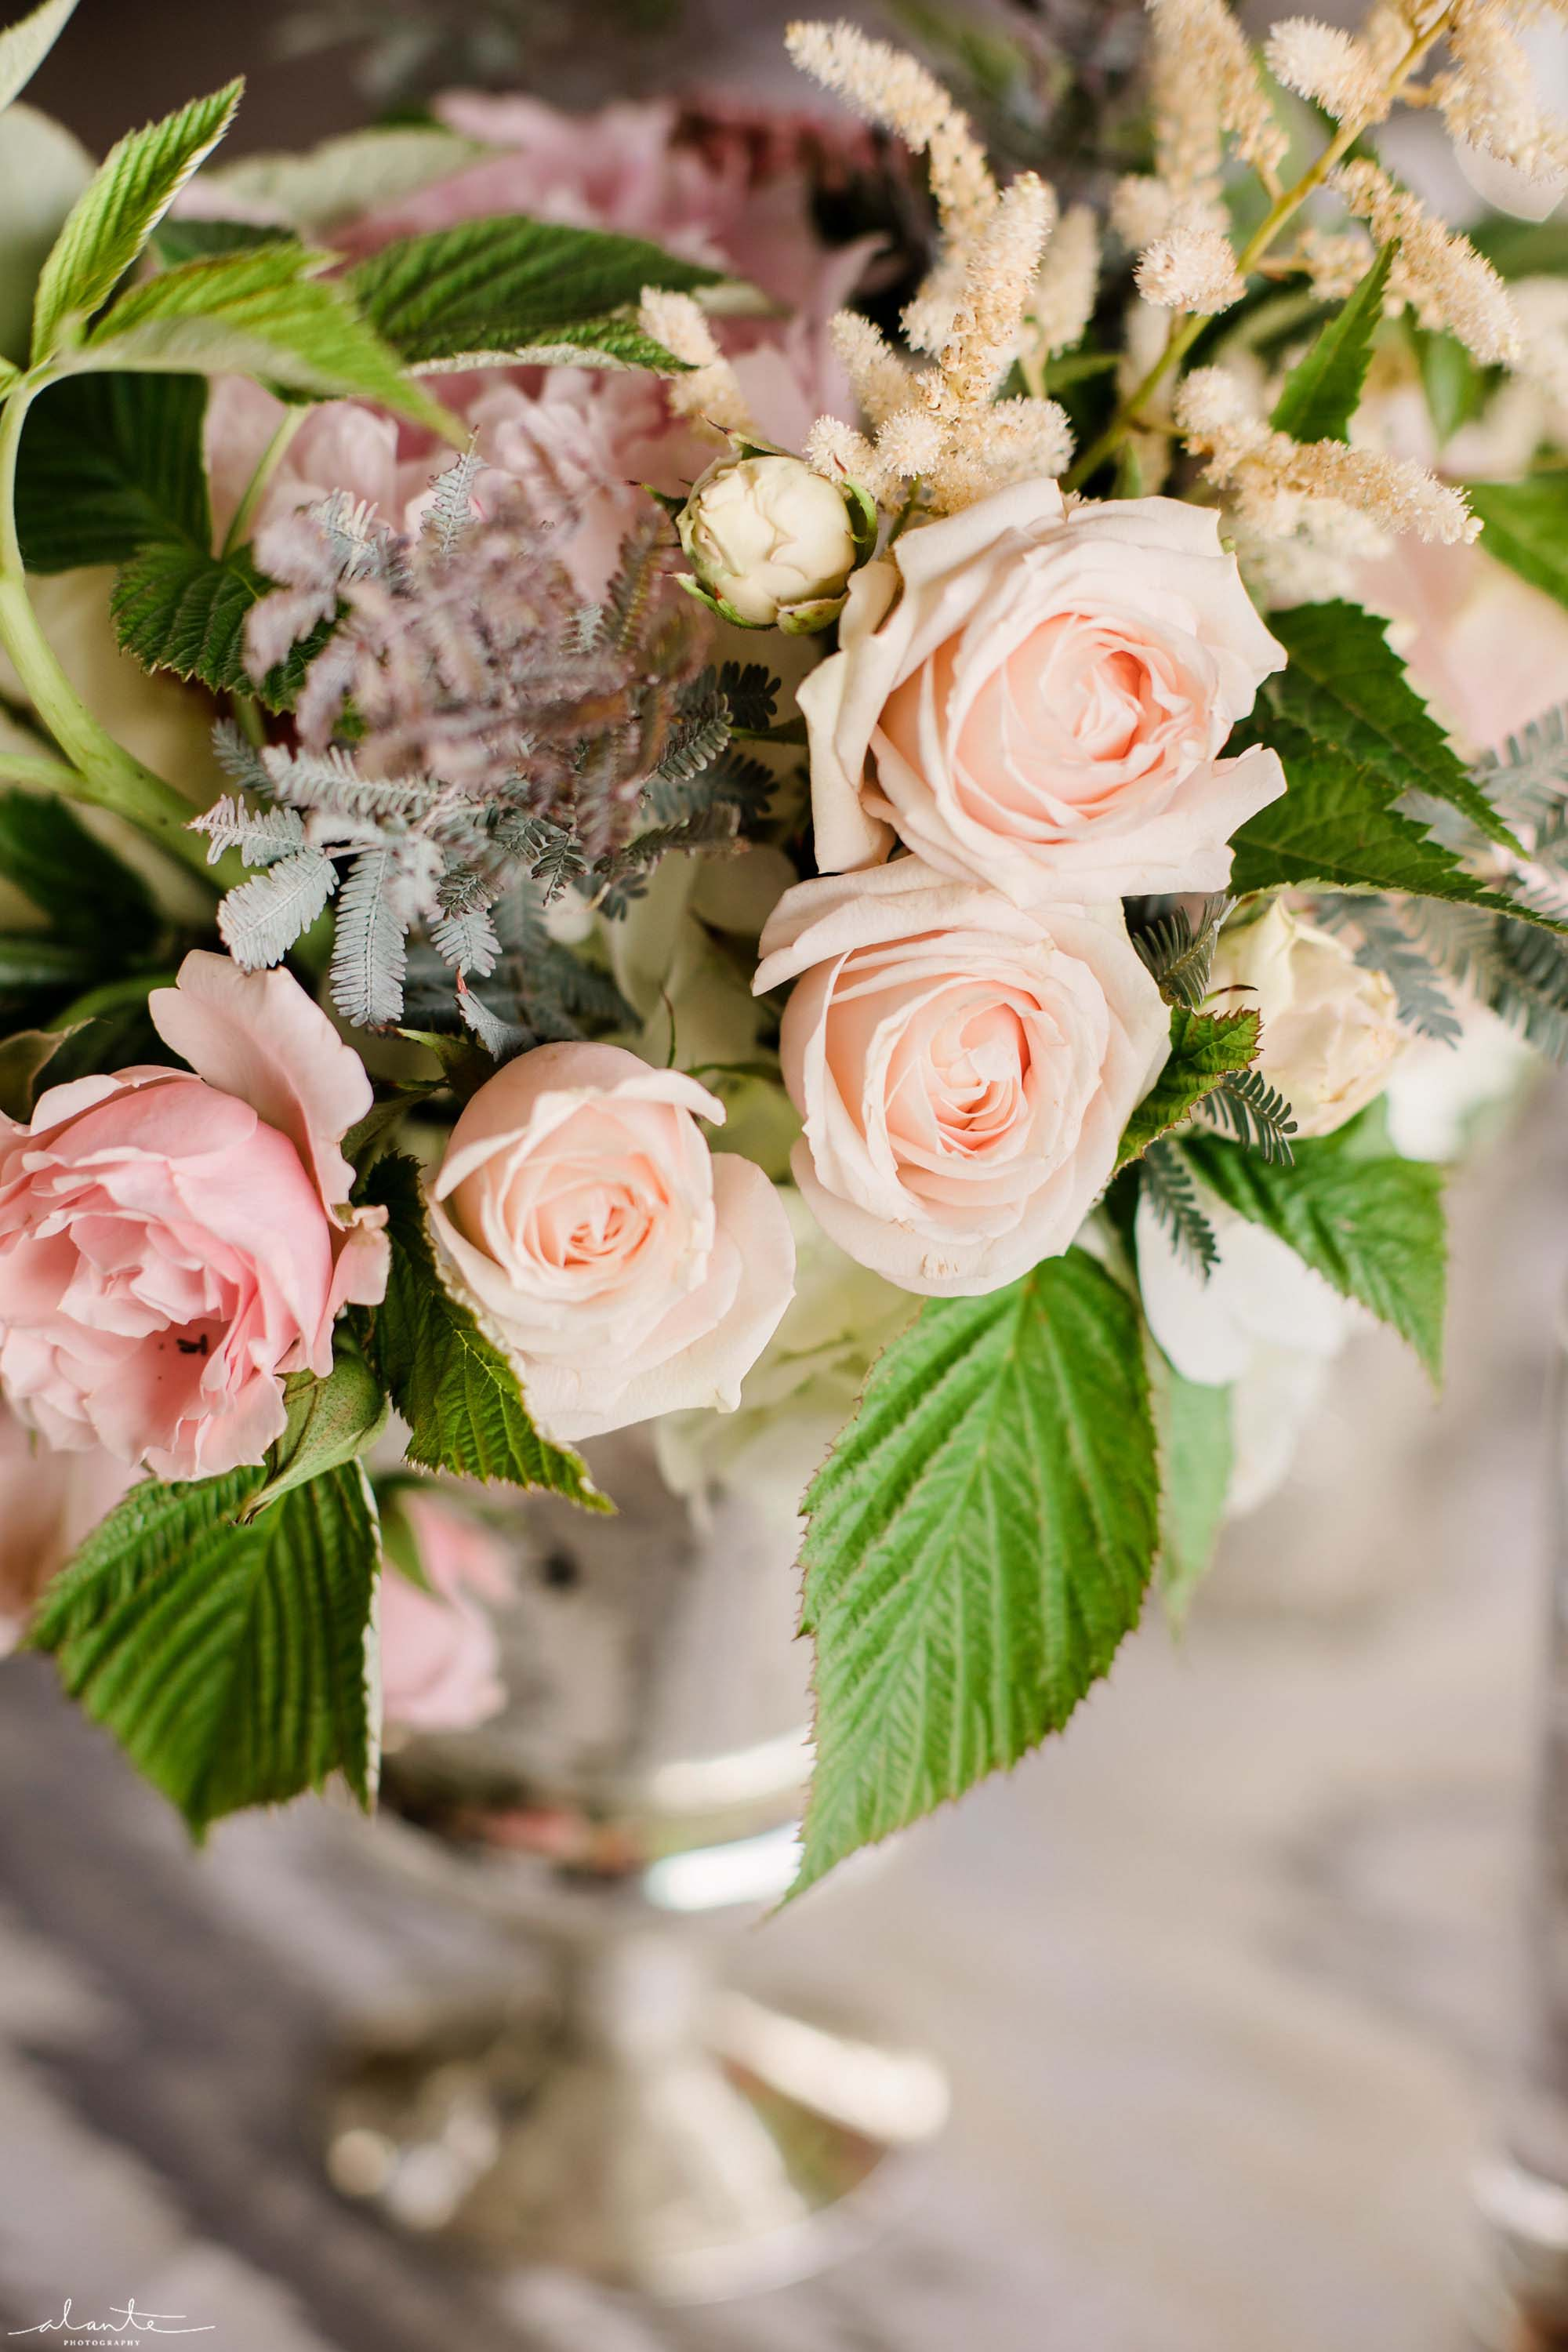 Centerpiece of pink roses, Olympic Rooftop Pavilion wedding with pink peonies by Flora Nova Design Seattle